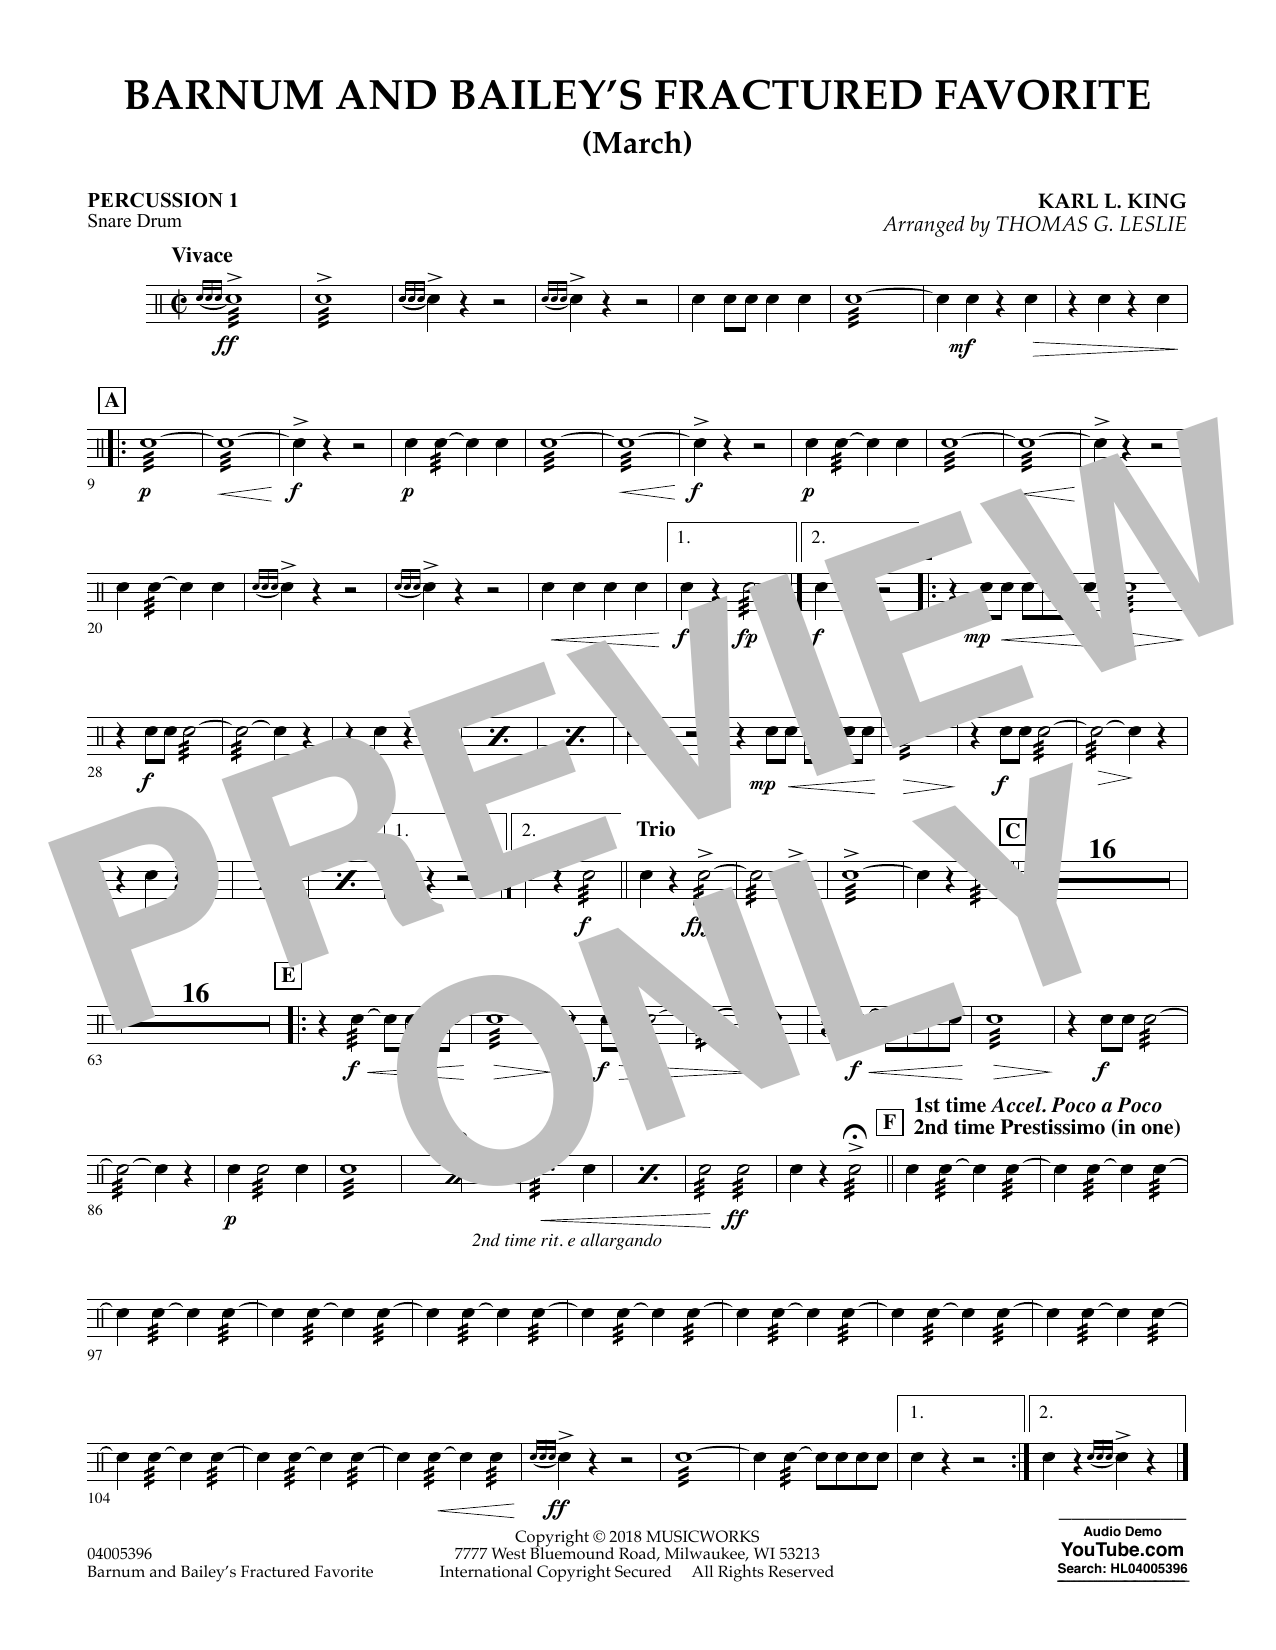 Barnum and Bailey's Fractured Favorite - Percussion 1 (Concert Band)